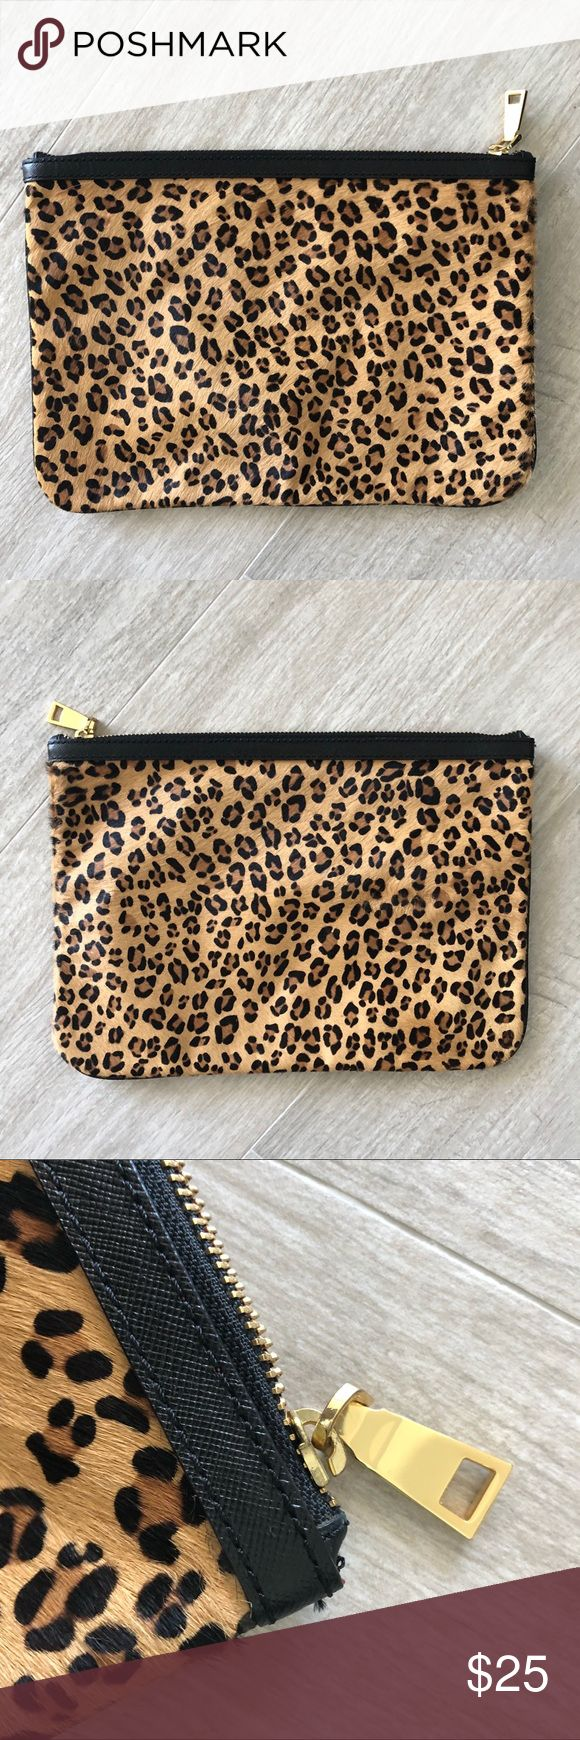 Banana Republic 🐆 clutch Banana Republic pony hair clutch in leopard print with red interior lining and gold hardware.    In very good condition. Just a little light wear to the edges. Banana Republic Bags Clutches & Wristlets